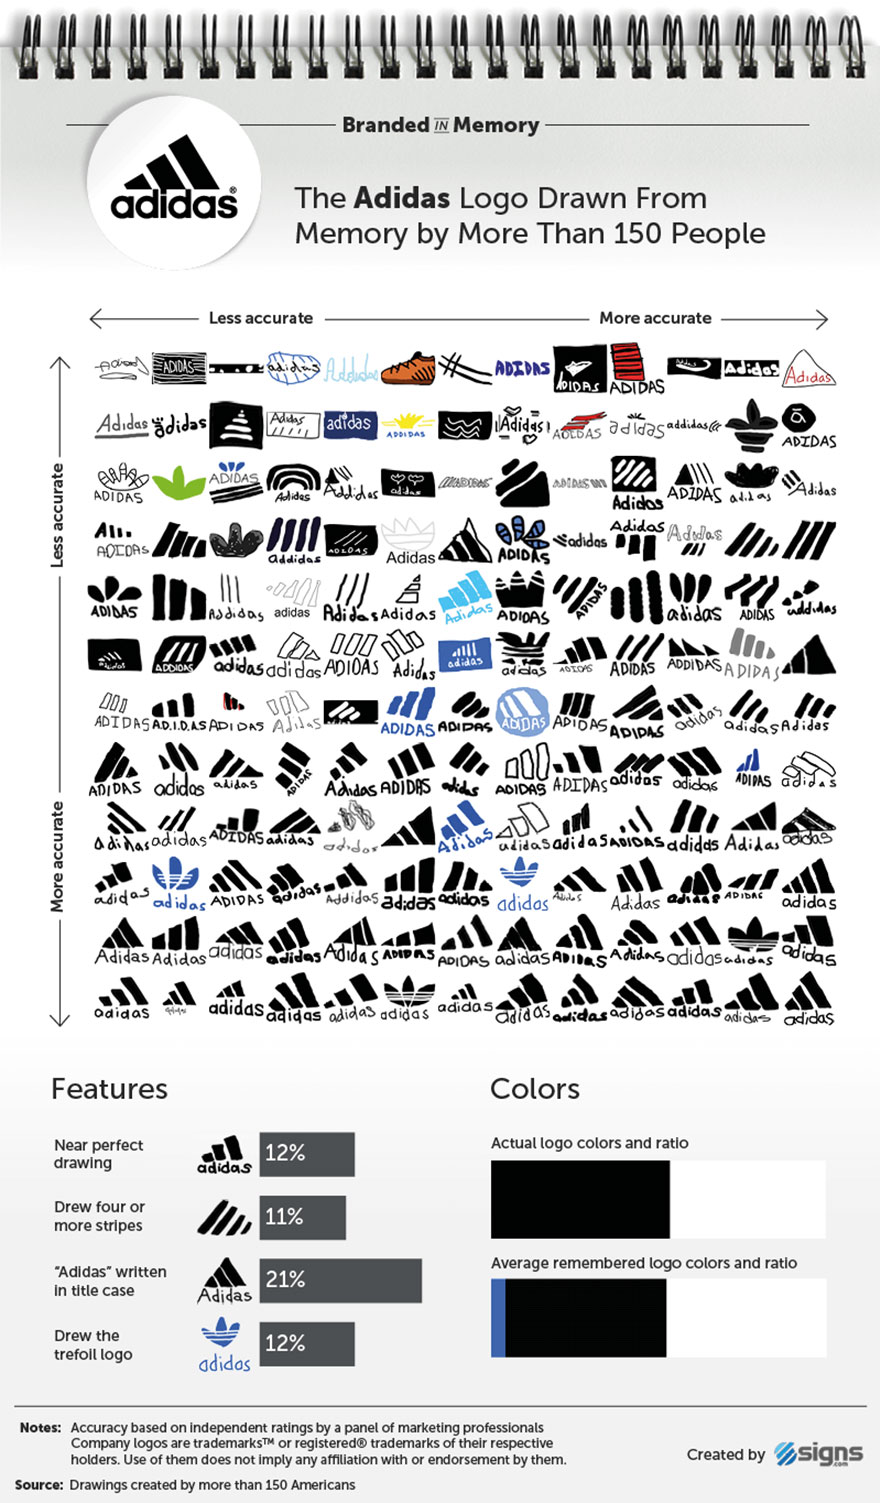 famous-brand-logos-drawn-from-memory-5-5